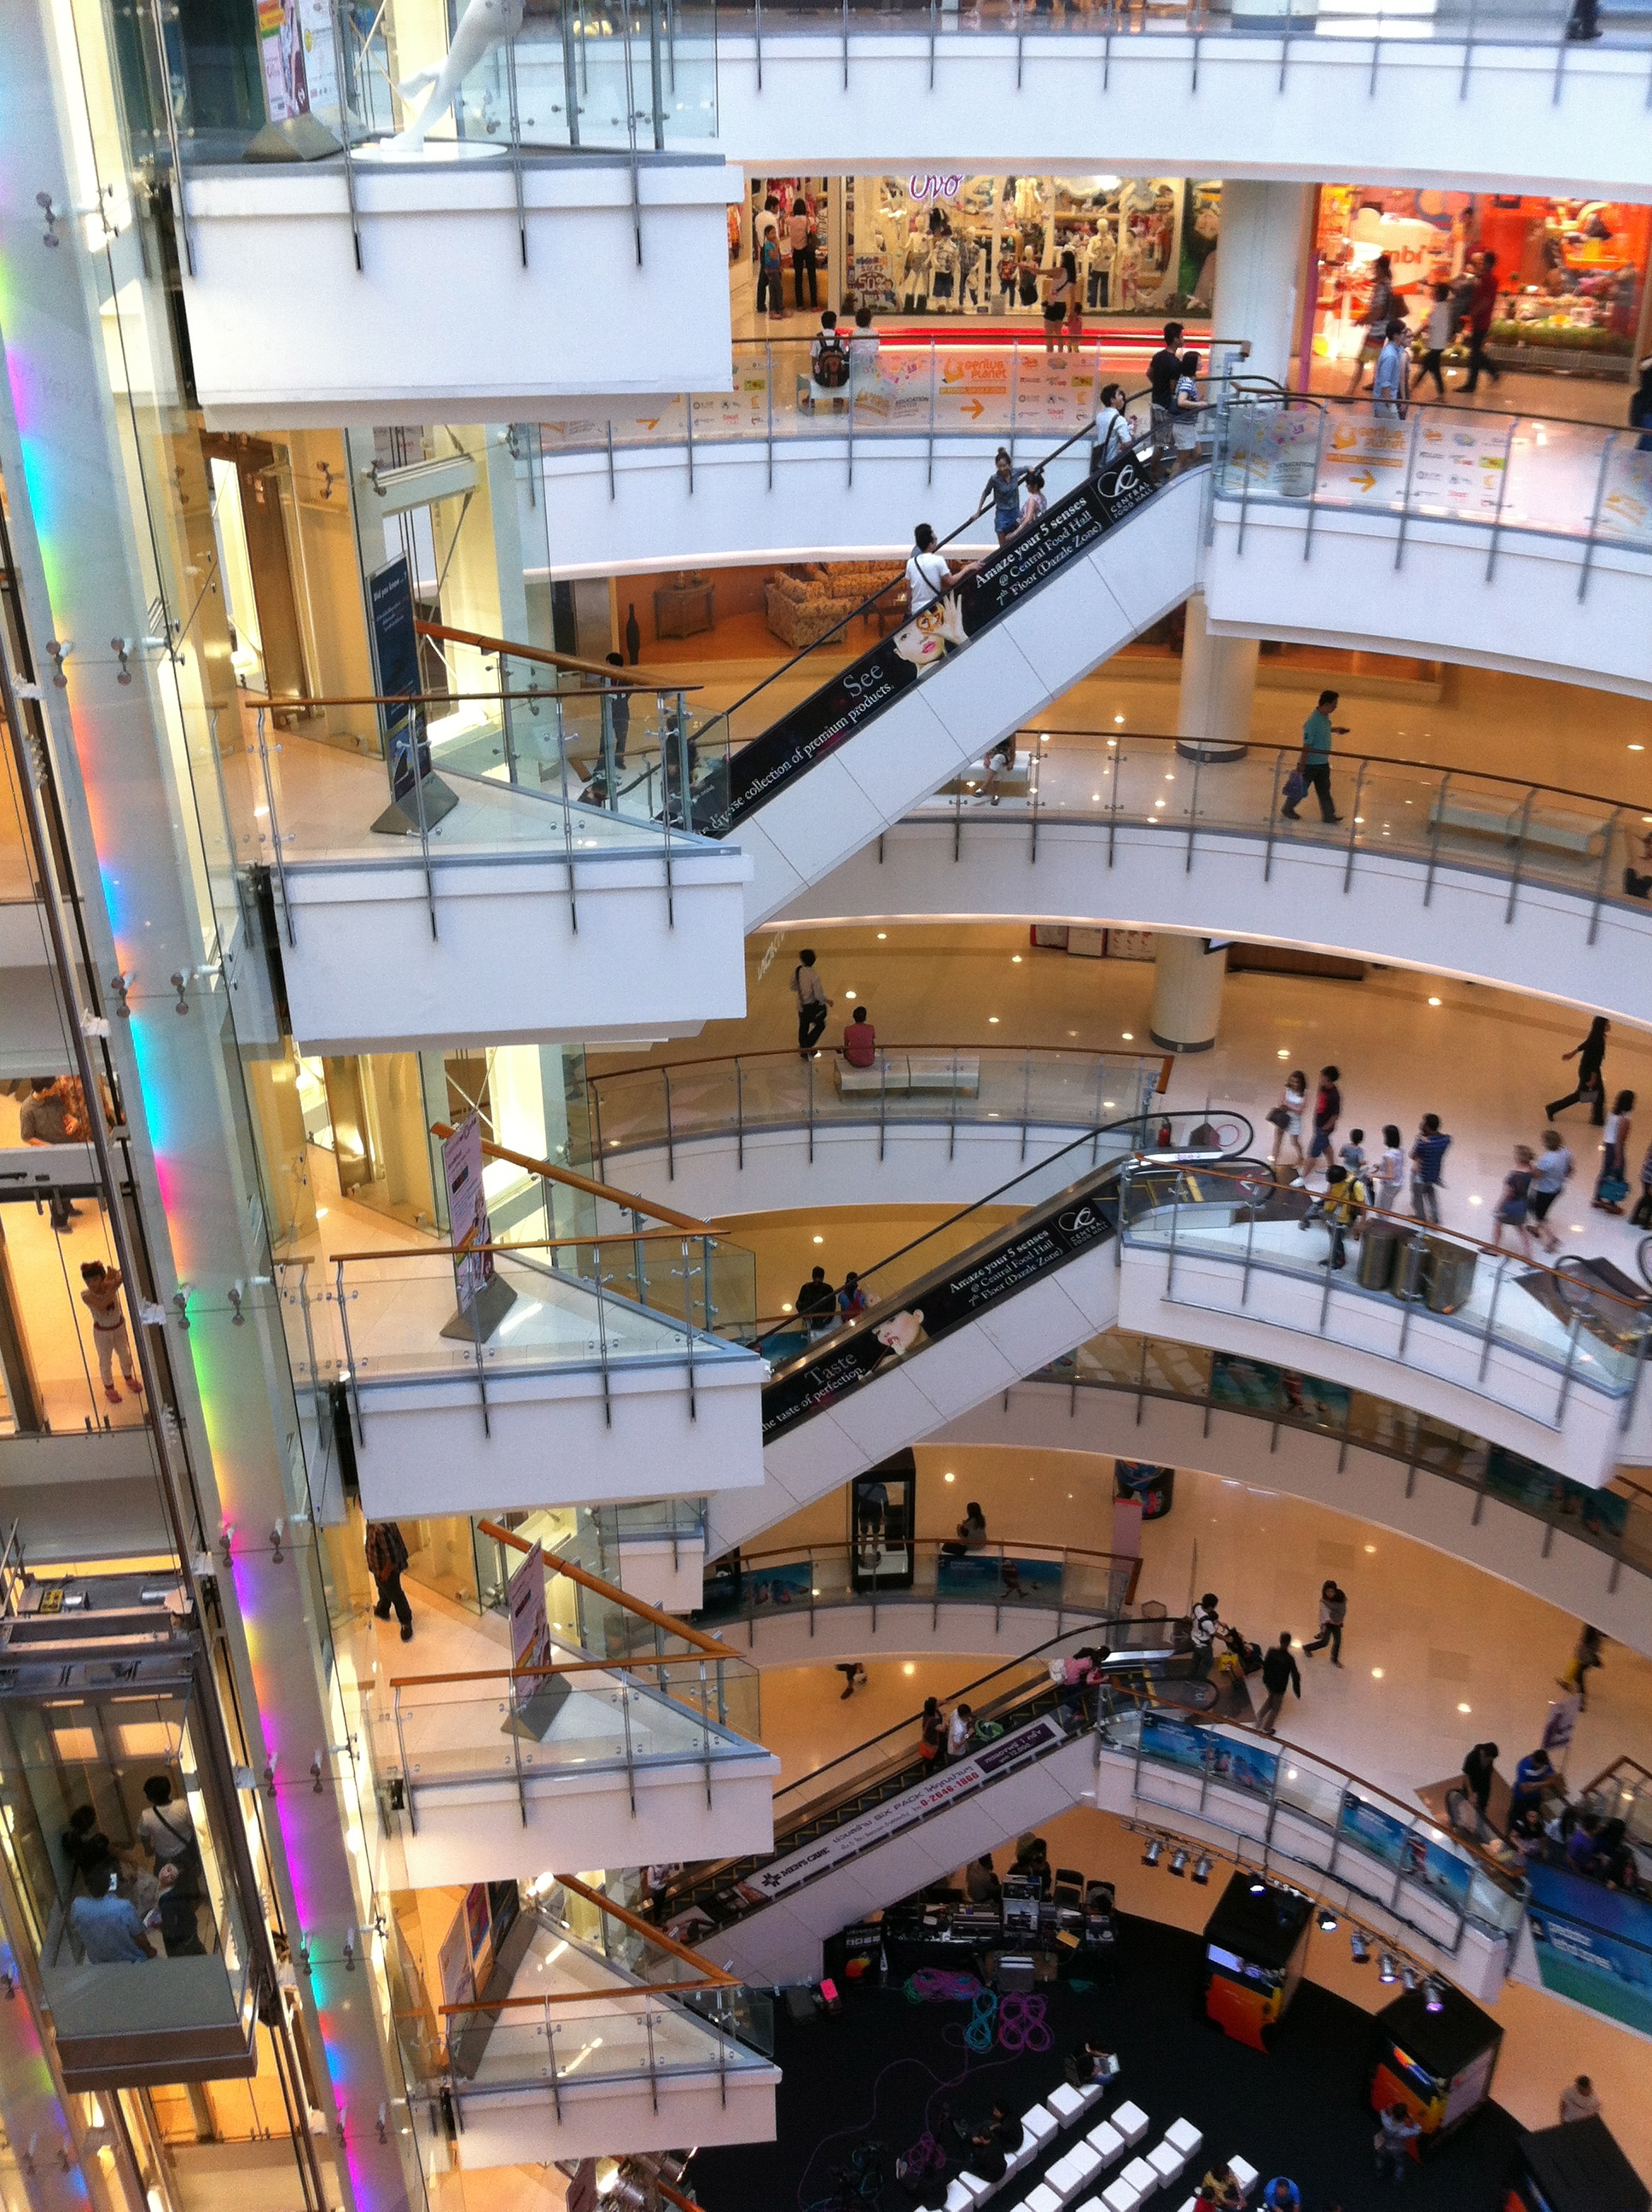 In CentralWorld shopping mall